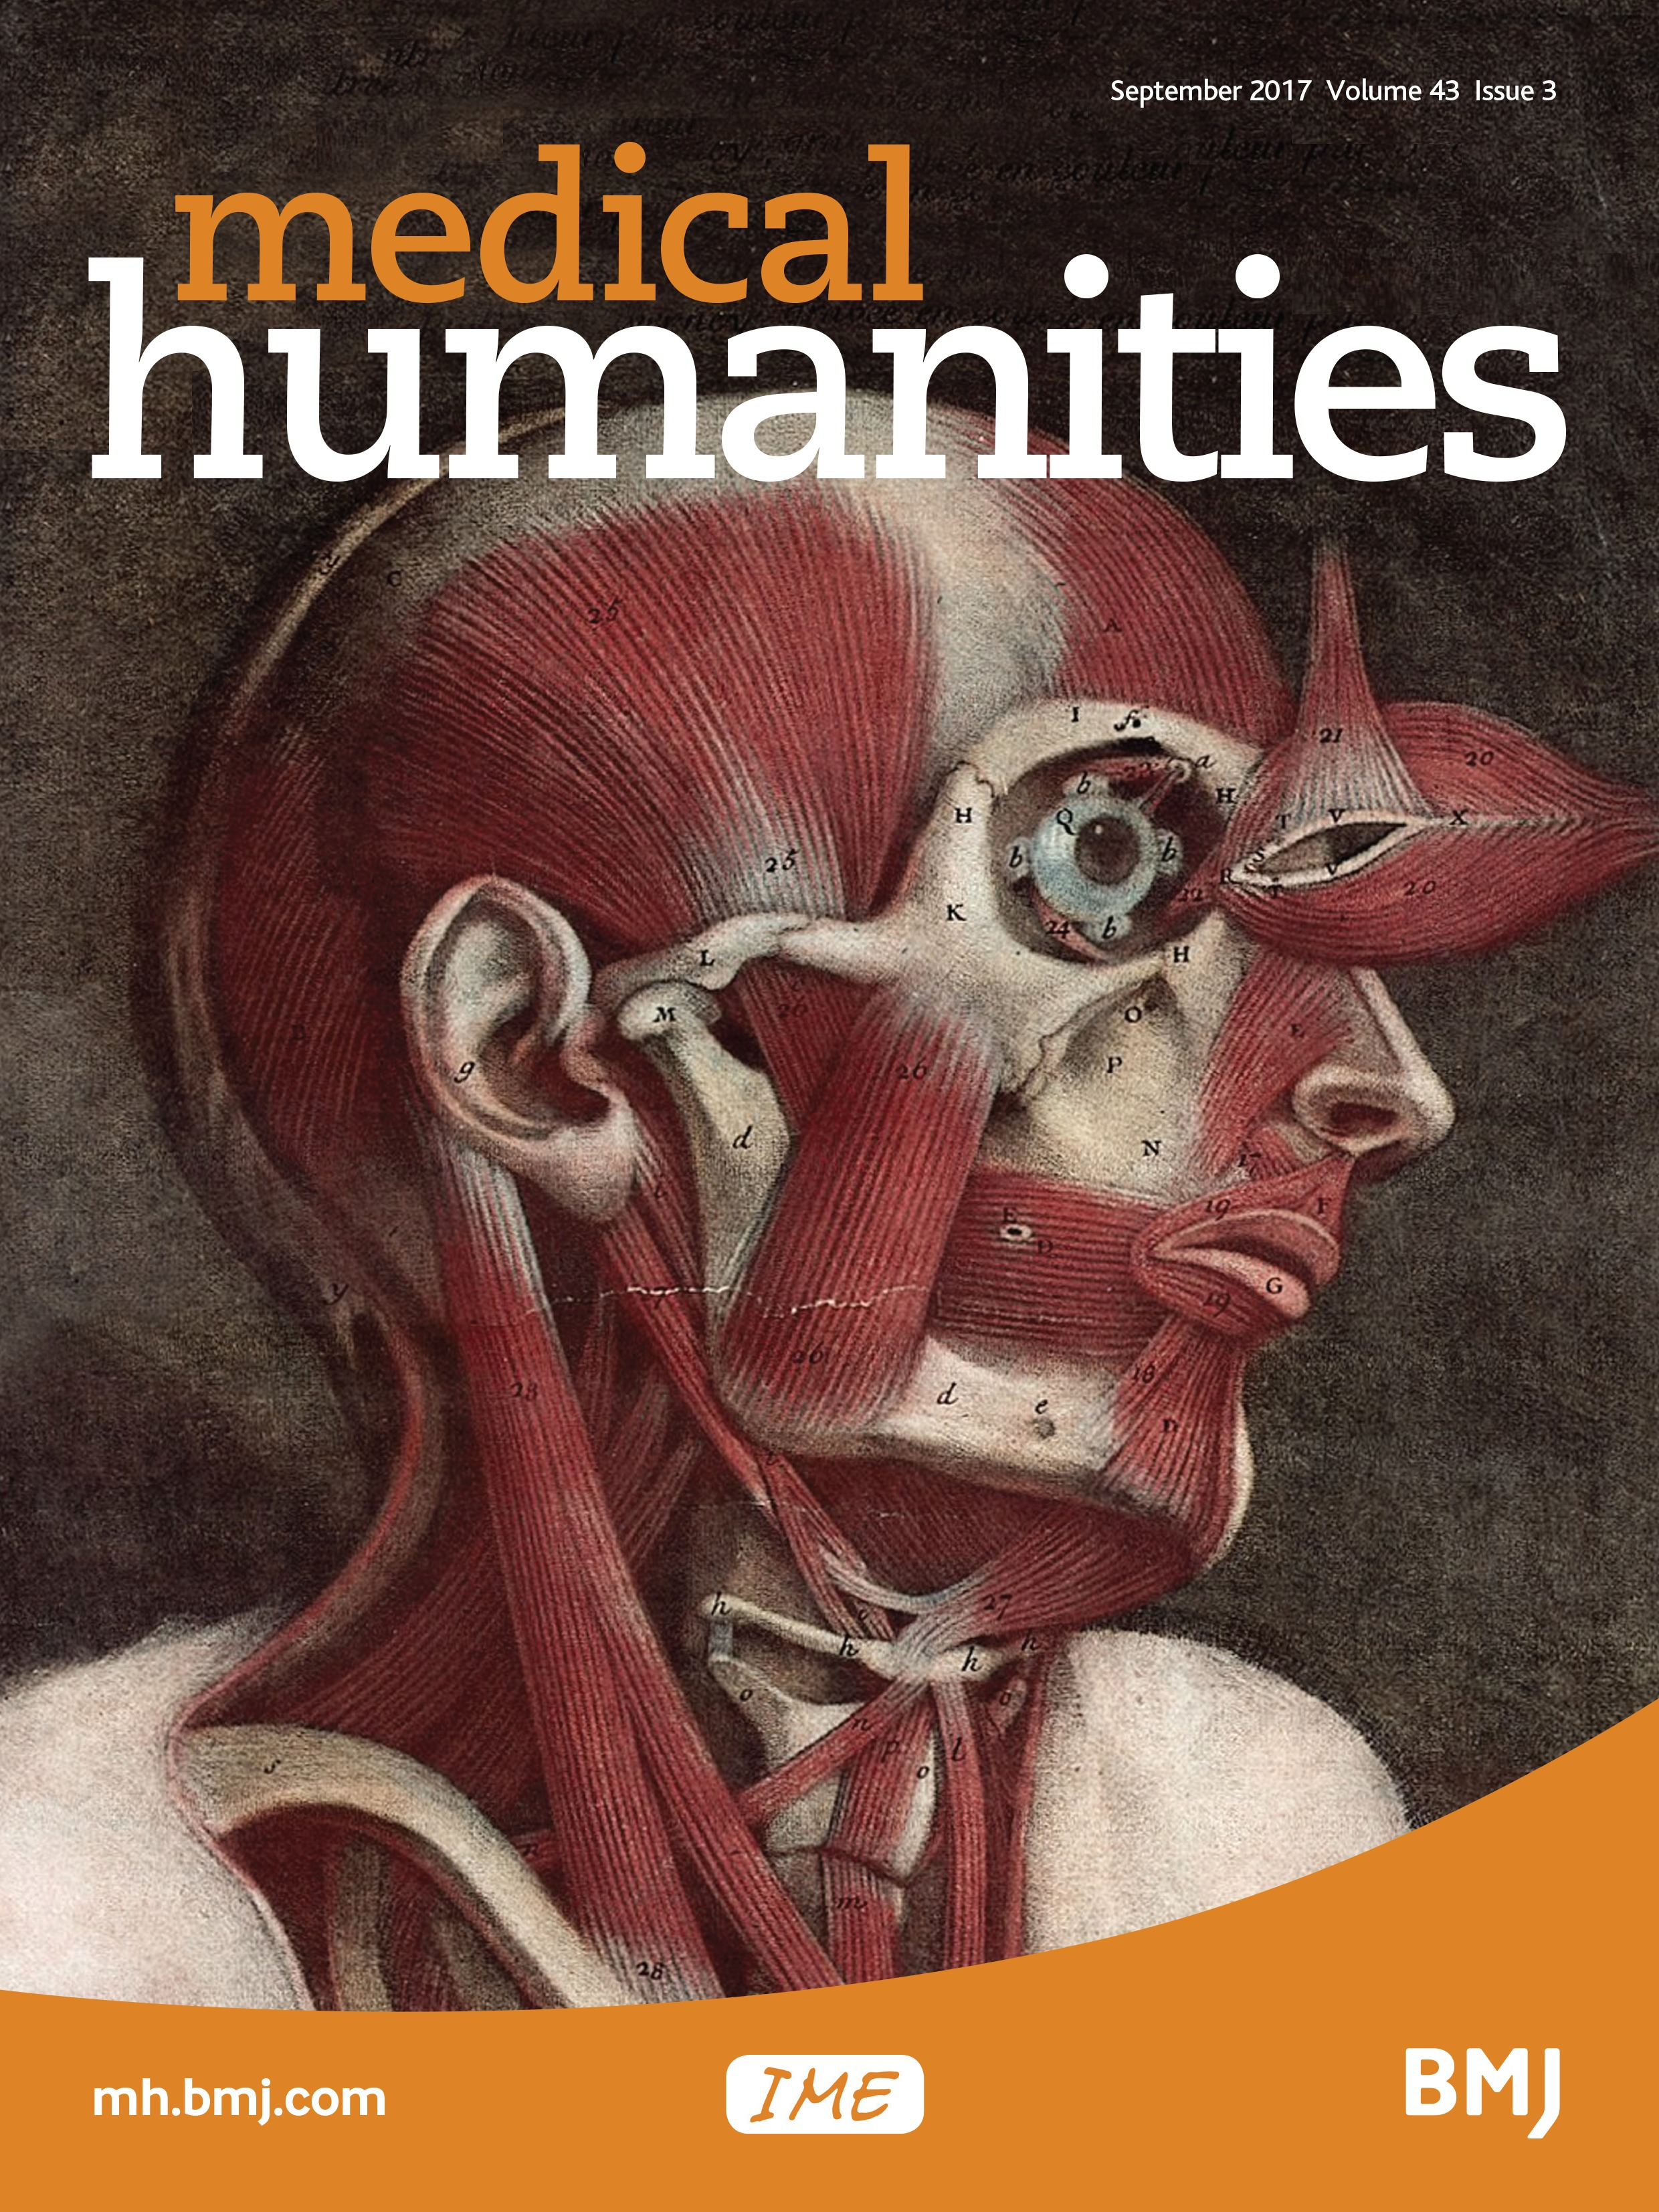 A Deep Ethics For Mental Difference And Disability The Case Of Rose Anatomy Diagram Related Keywords Suggestions Vincent Van Gogh Medical Humanities